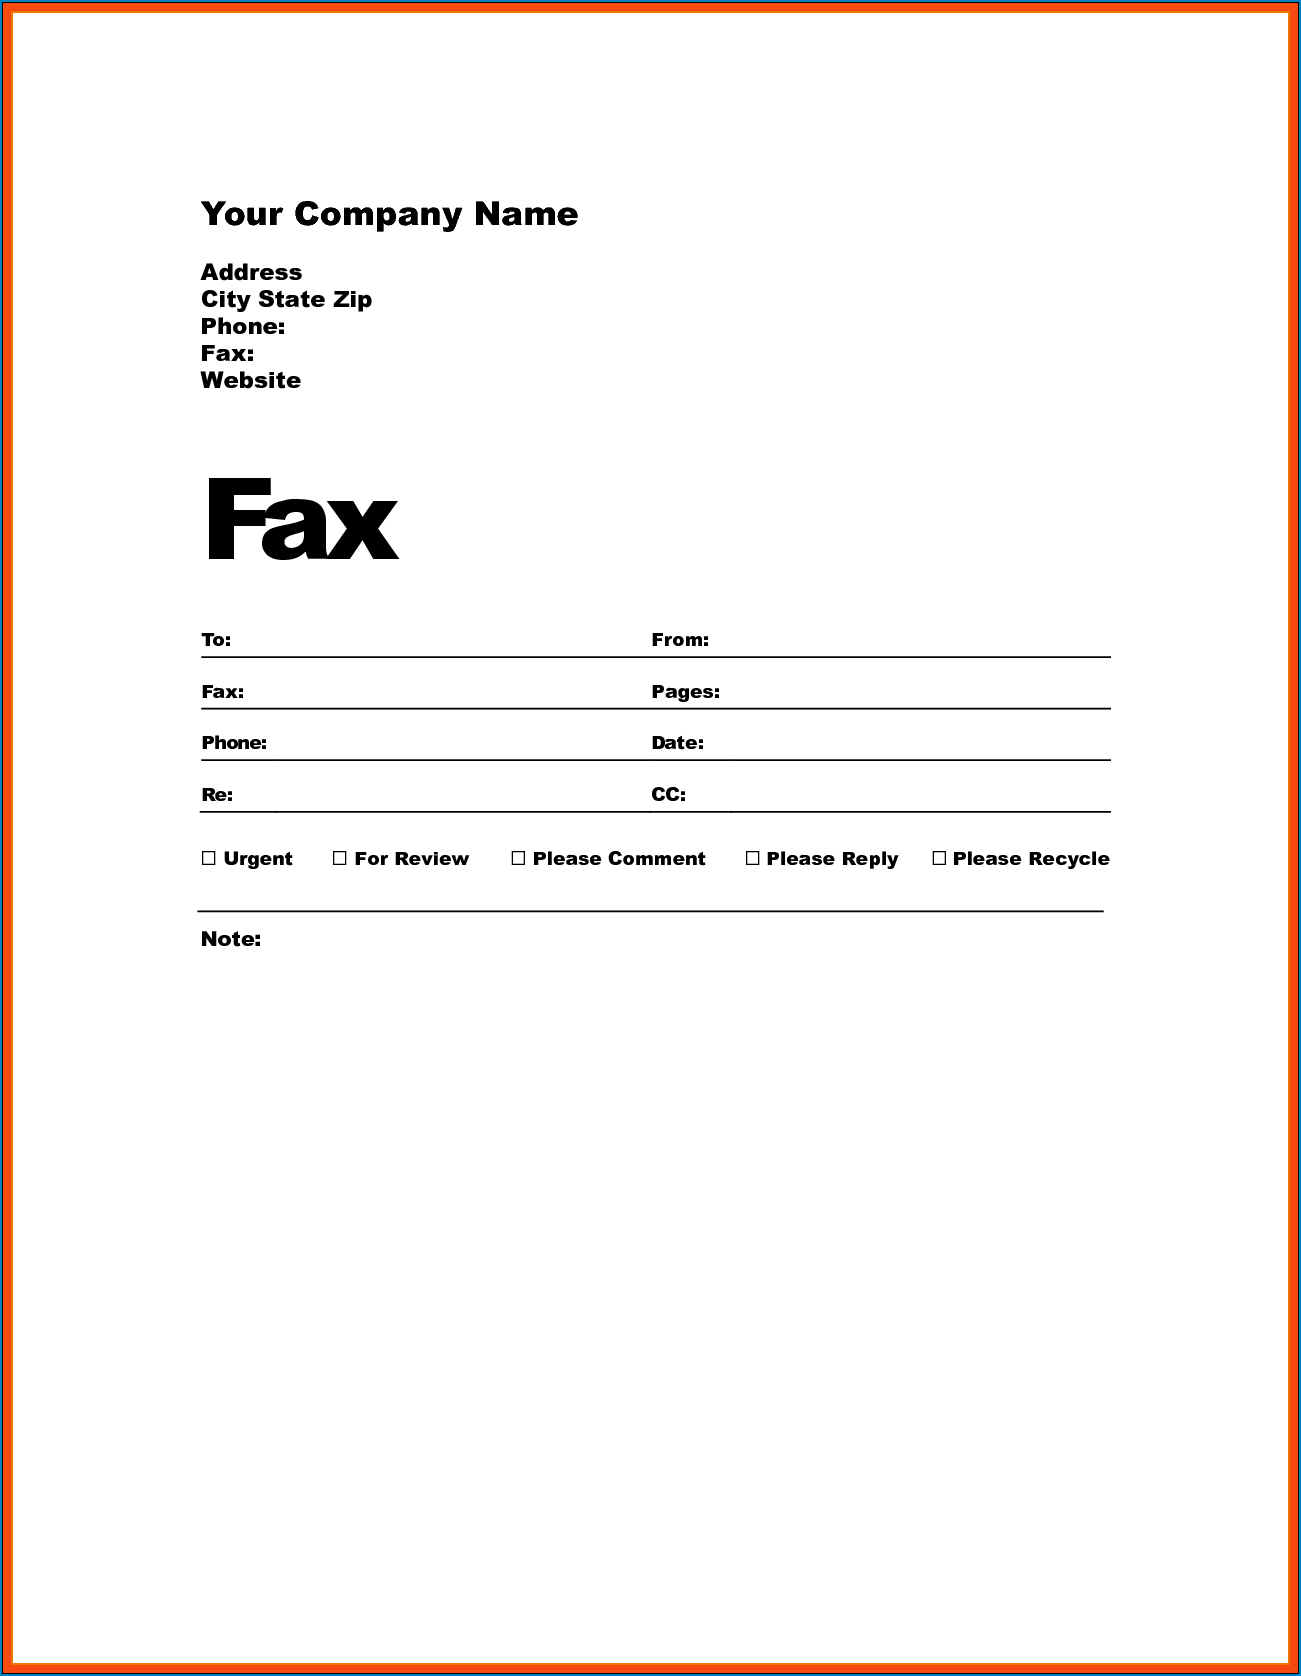 Fax Cover Letter Template Example